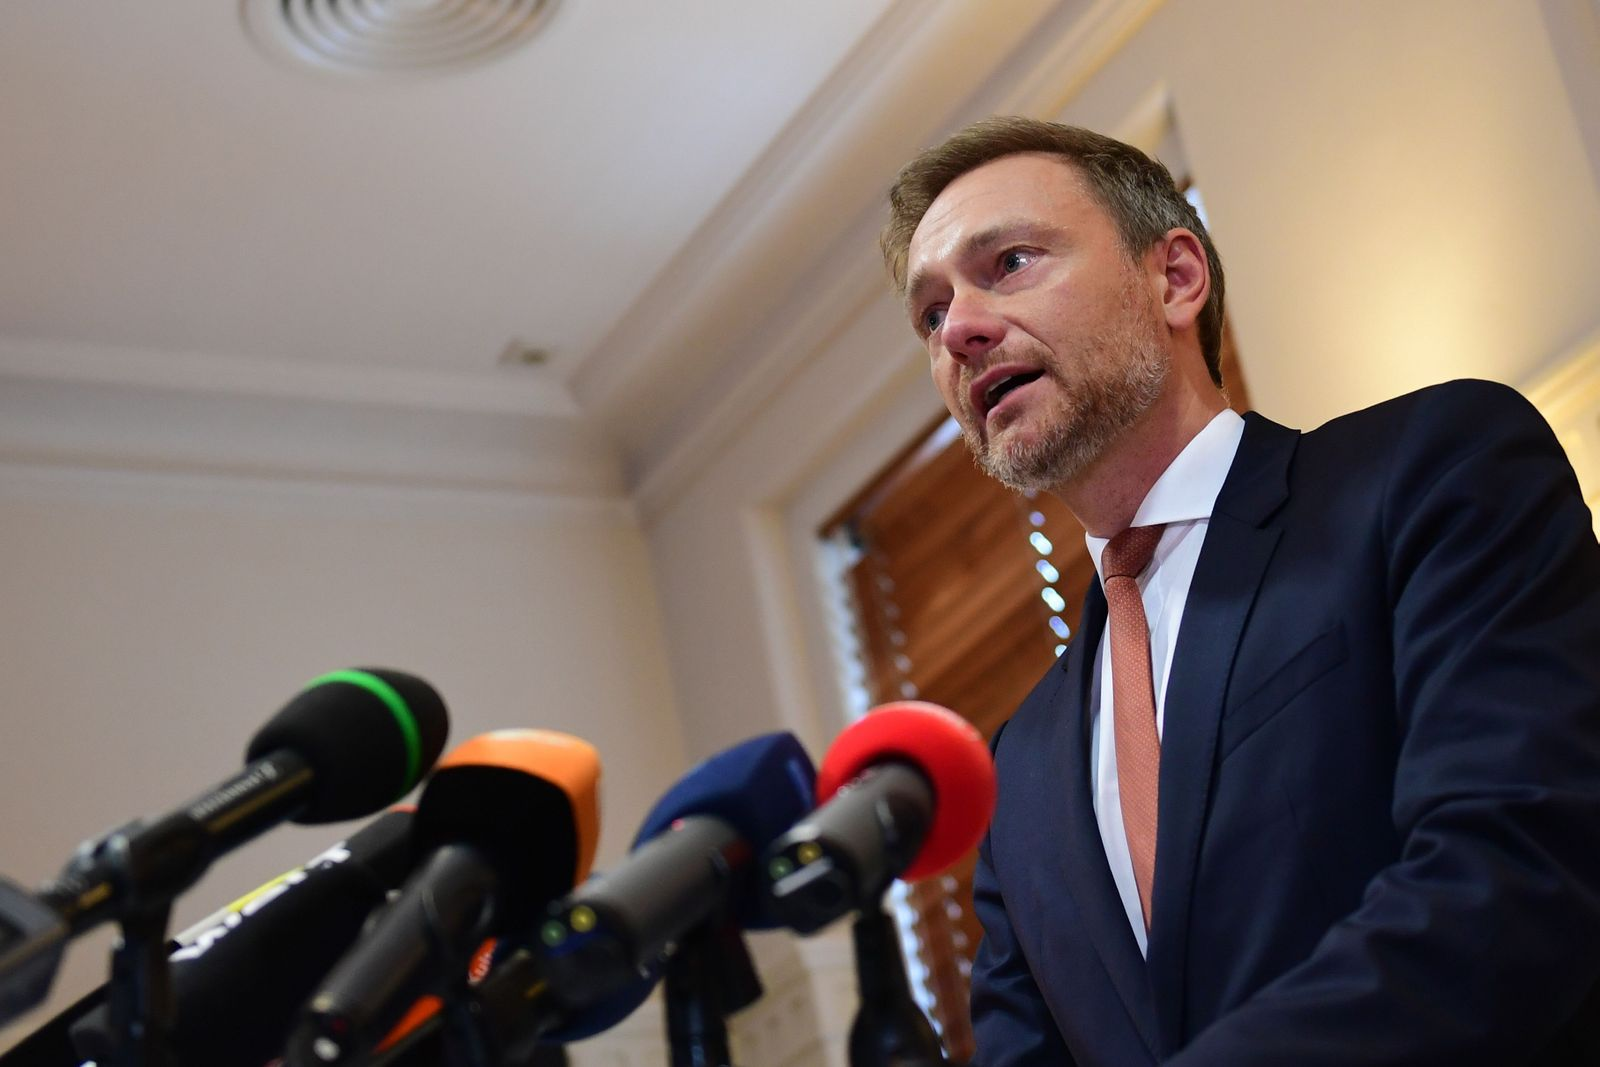 New elected State Prime Minister of Thuringia resigns, Erfurt, Germany - 06 Feb 2020